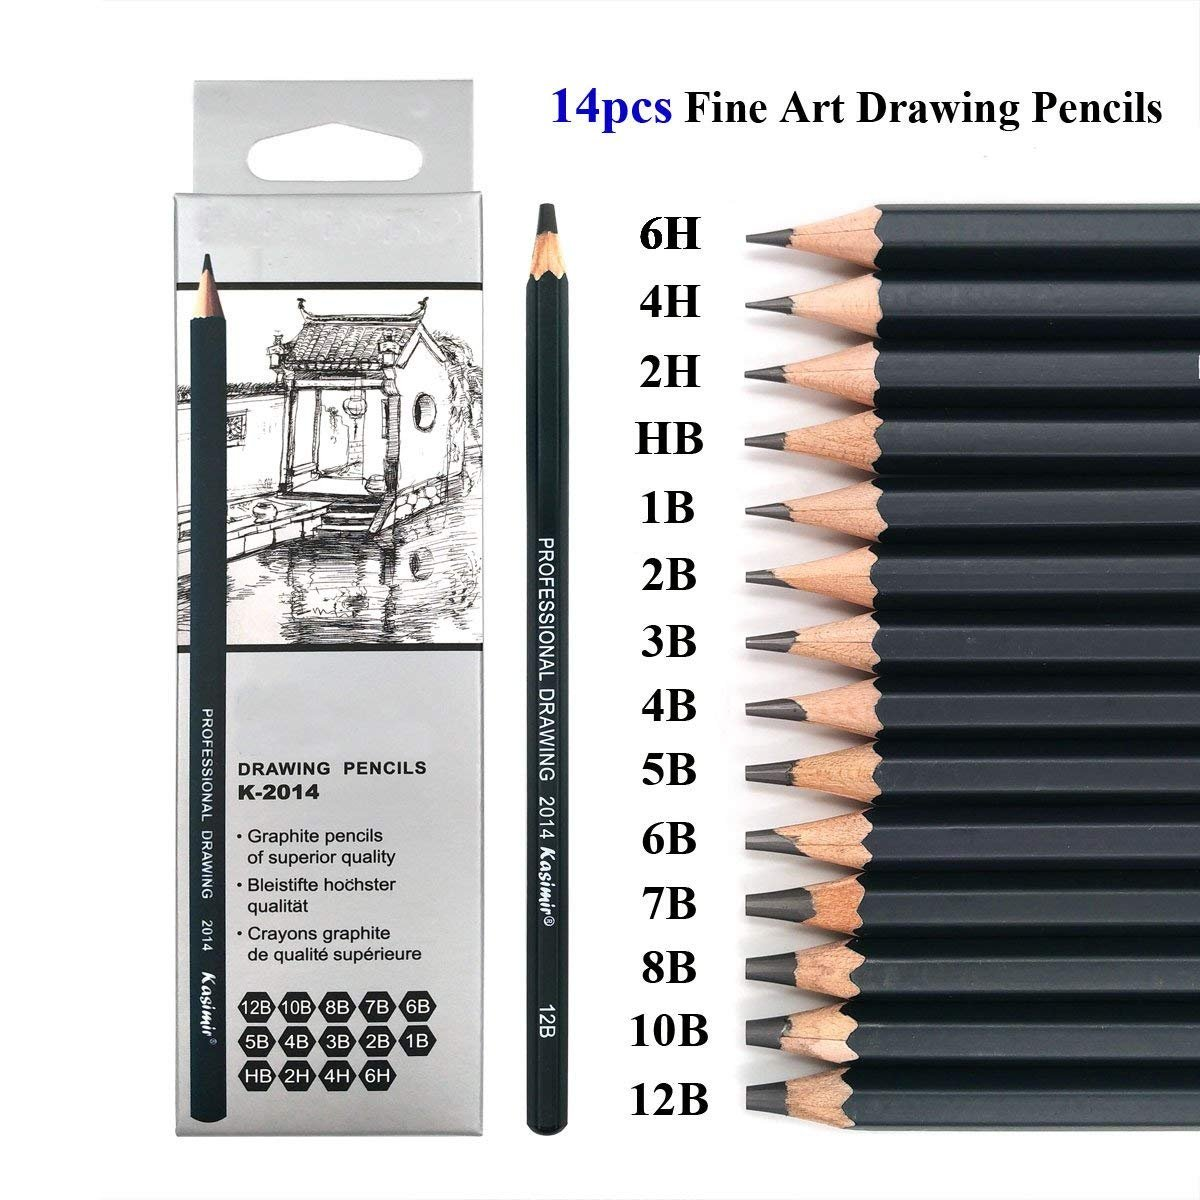 Amazon com sketching pencils set 14 pieces drawing pencils 6h 4h 2h hb b 2b 3b 4b 5b 6b 7b 8b 10b 12b